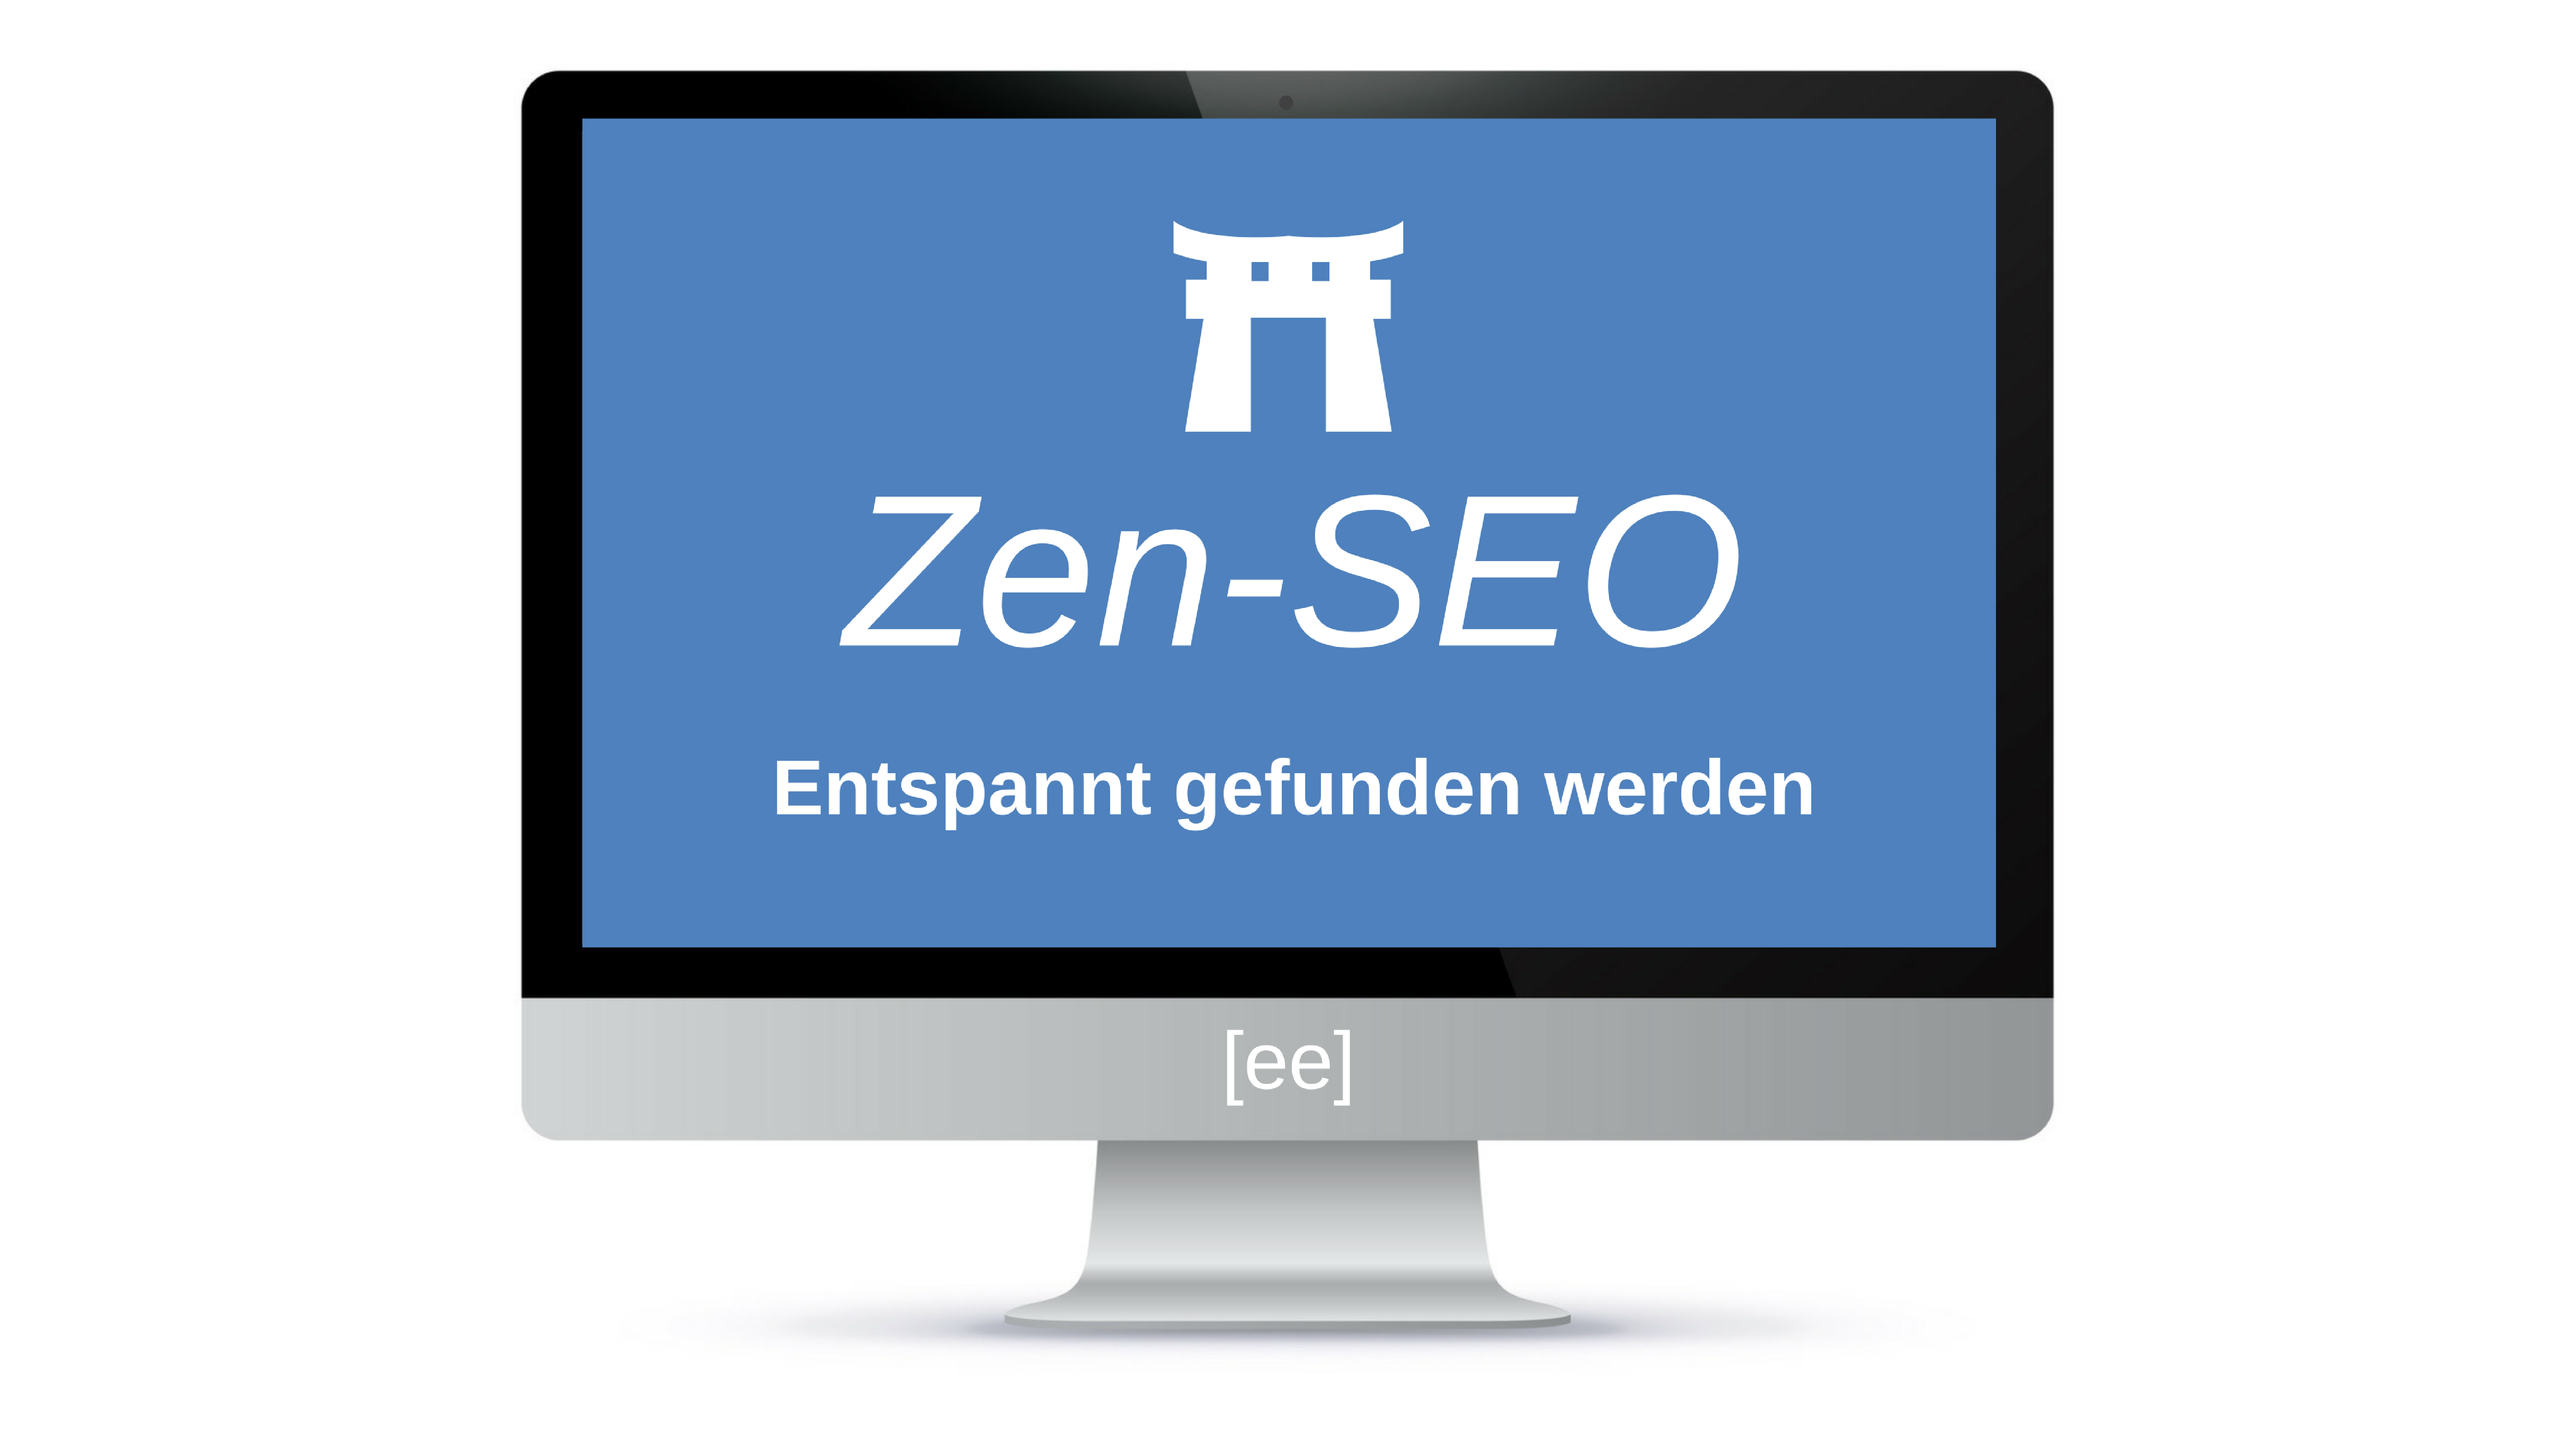 Zen-SEO Video Kurs